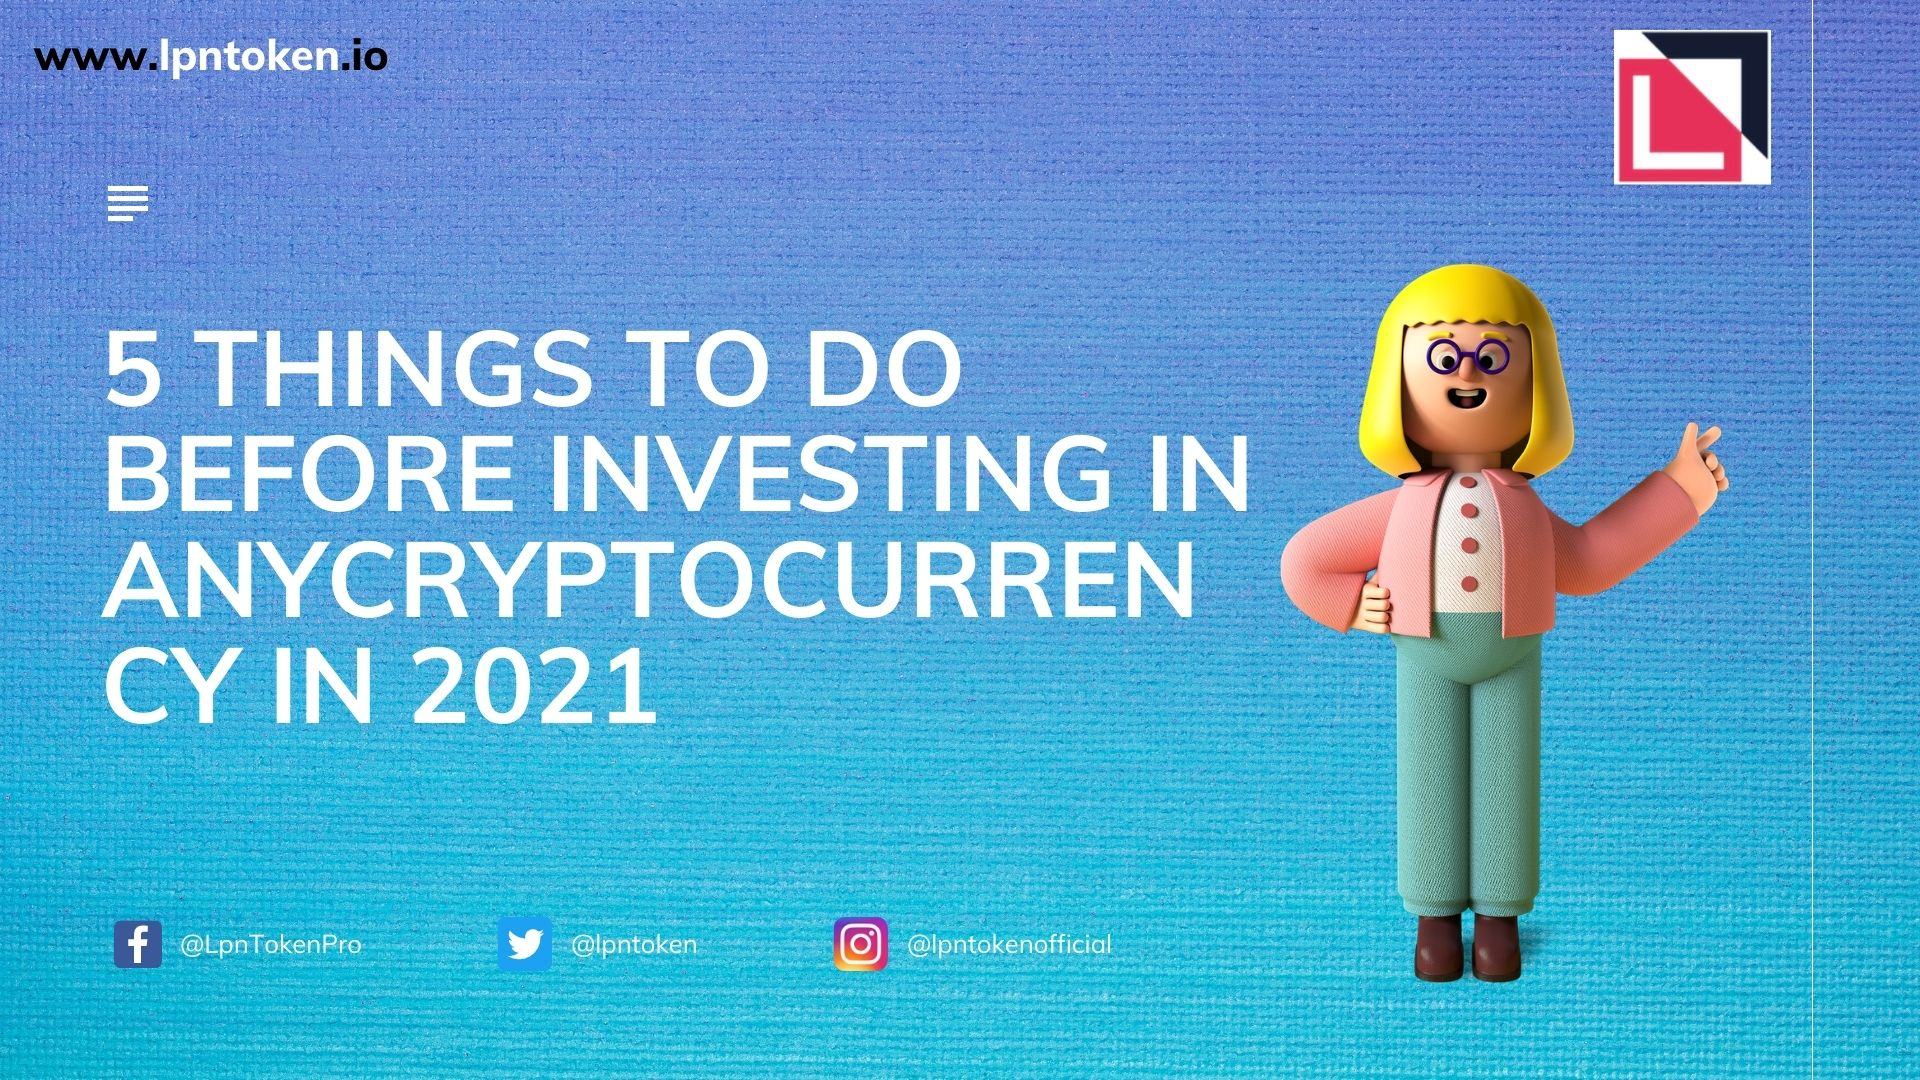 5 Things To Do Before Investing in Any Cryptocurrency in 2021